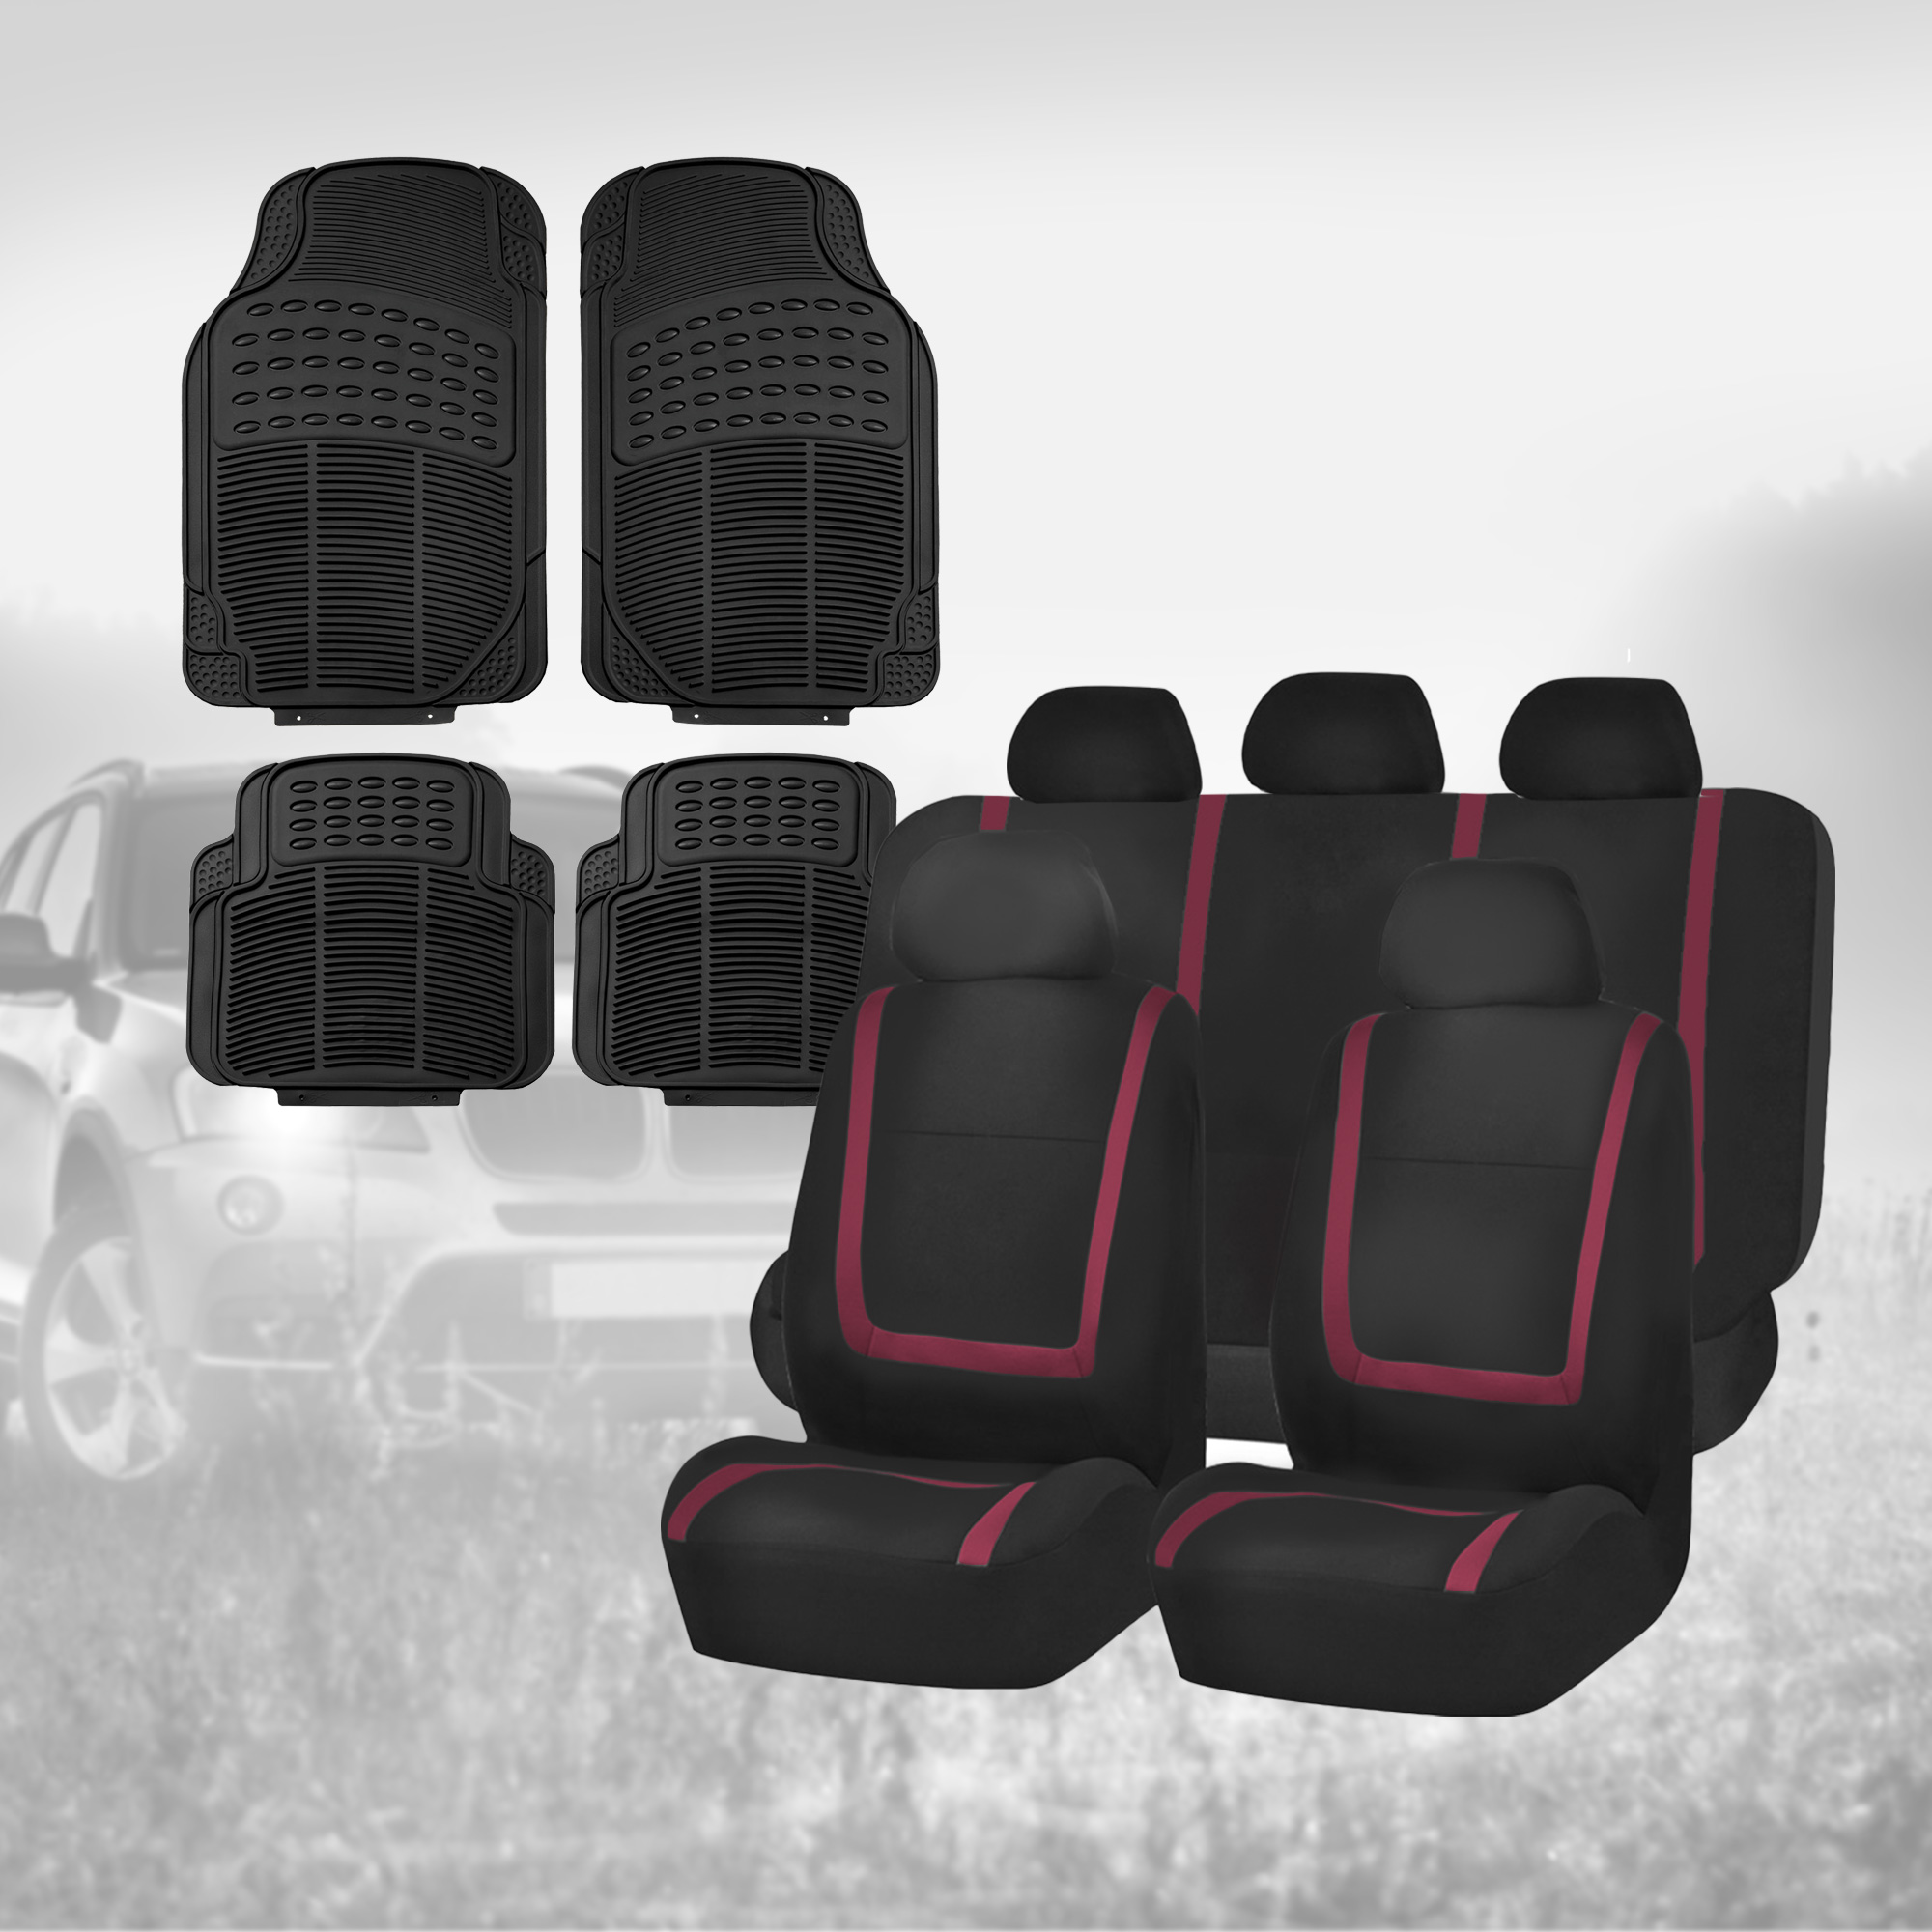 black yellow car seat covers with black floor mats combo for auto car suv ebay. Black Bedroom Furniture Sets. Home Design Ideas